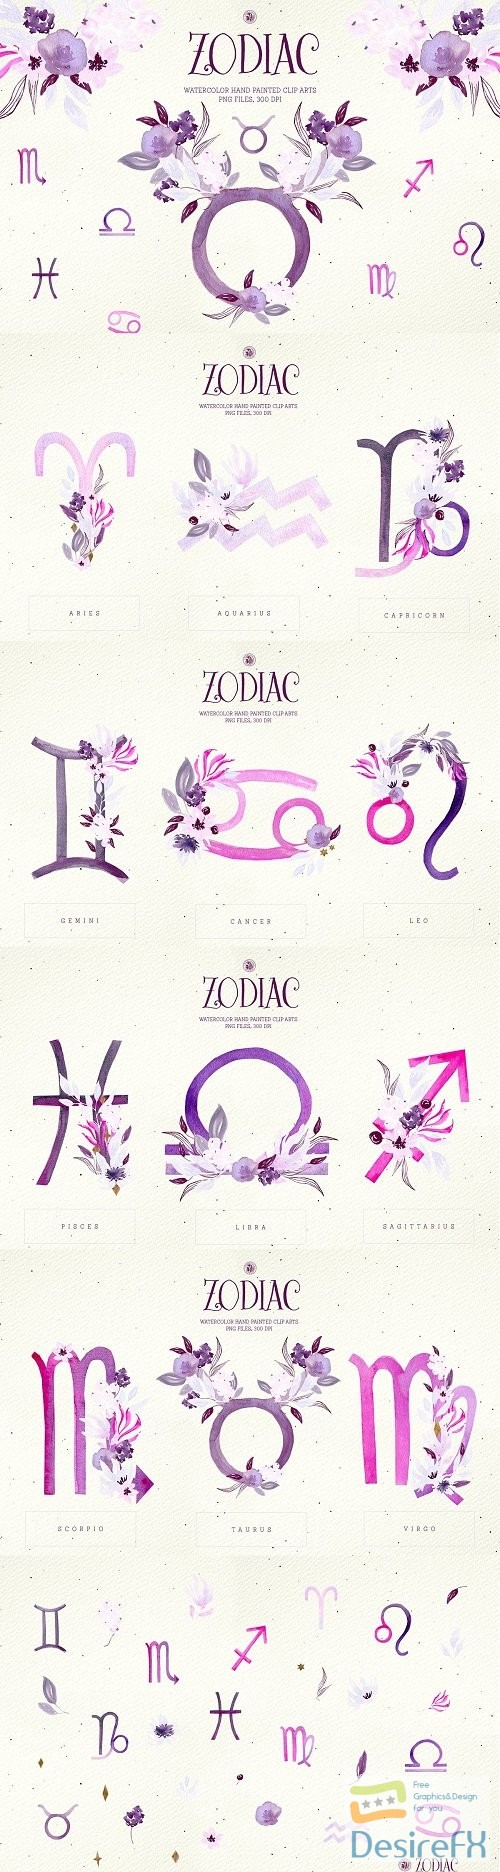 photoshop - Zodiac Signs - 3564991